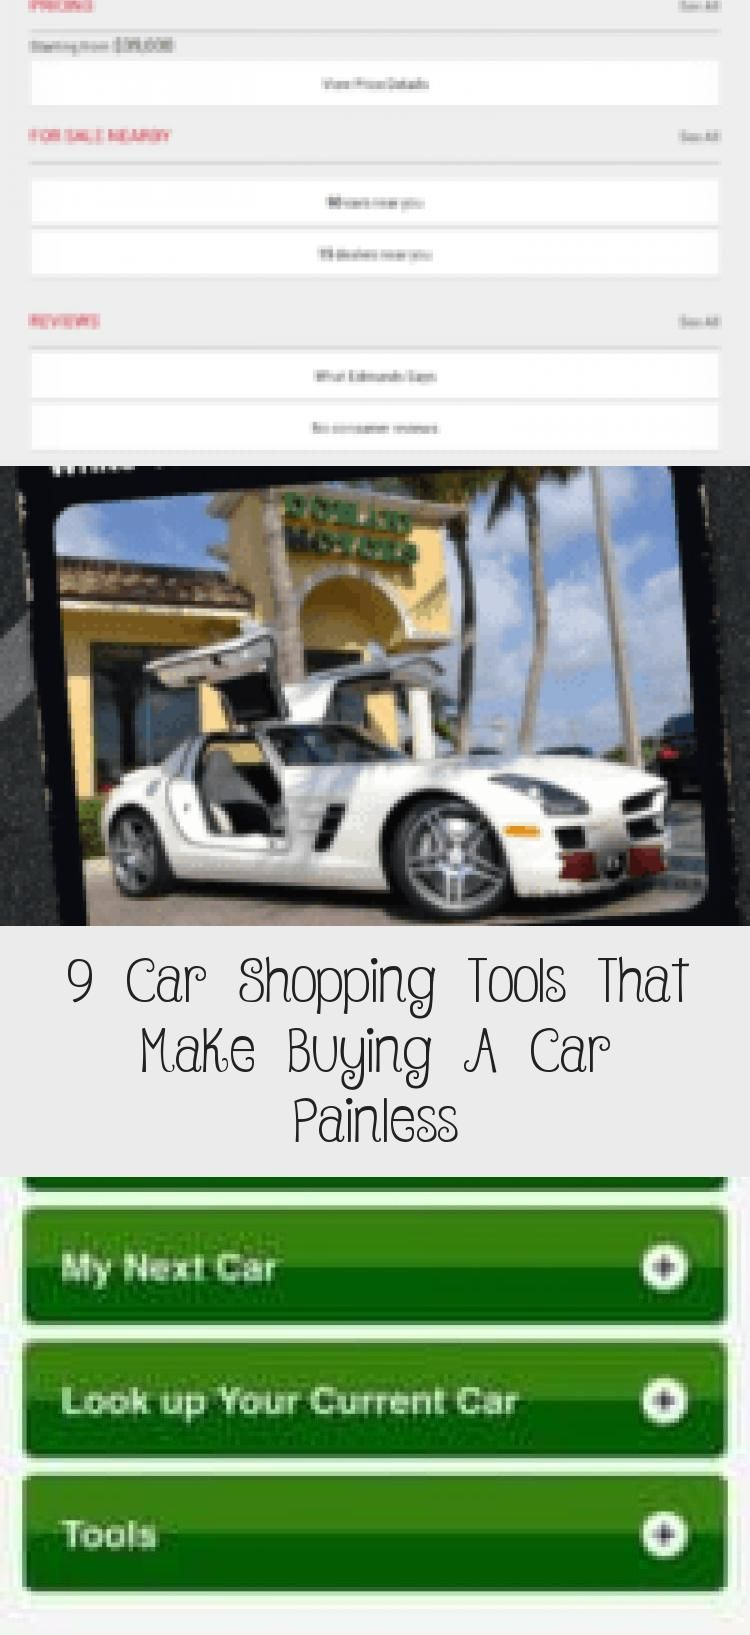 Car buying apps